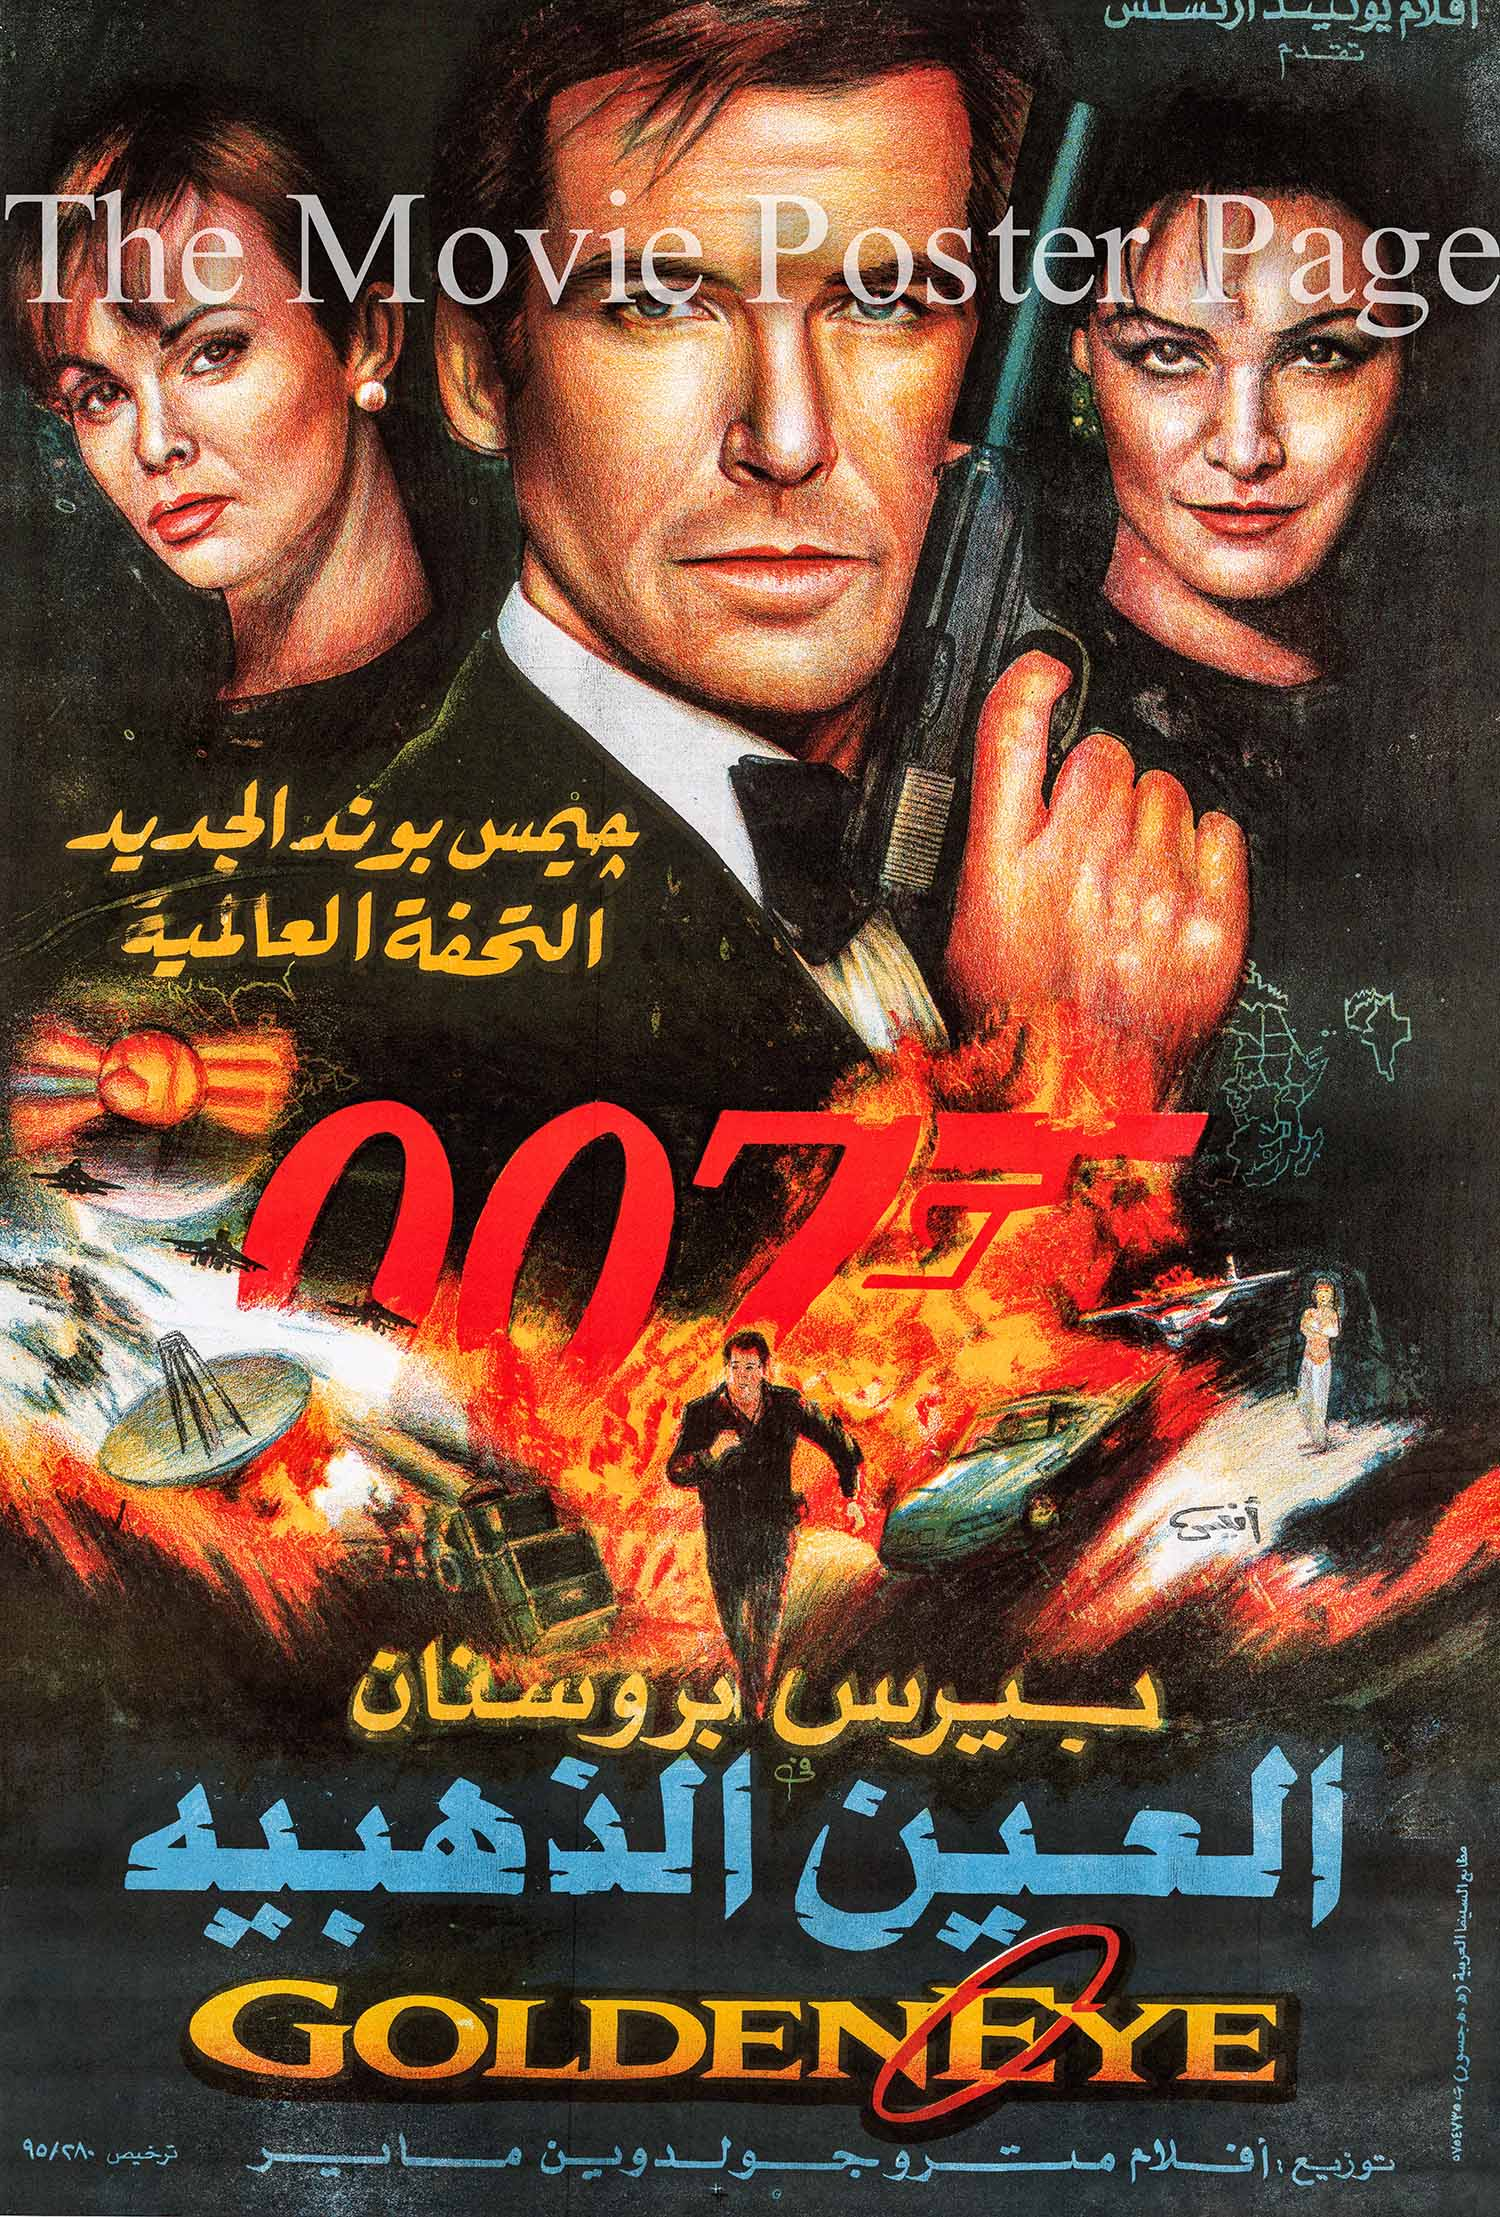 Pictured is an Egyptian promotional poster for the 1995 Martin Campbell film Goldeneye starring Pierce Brosnan as James Bond.